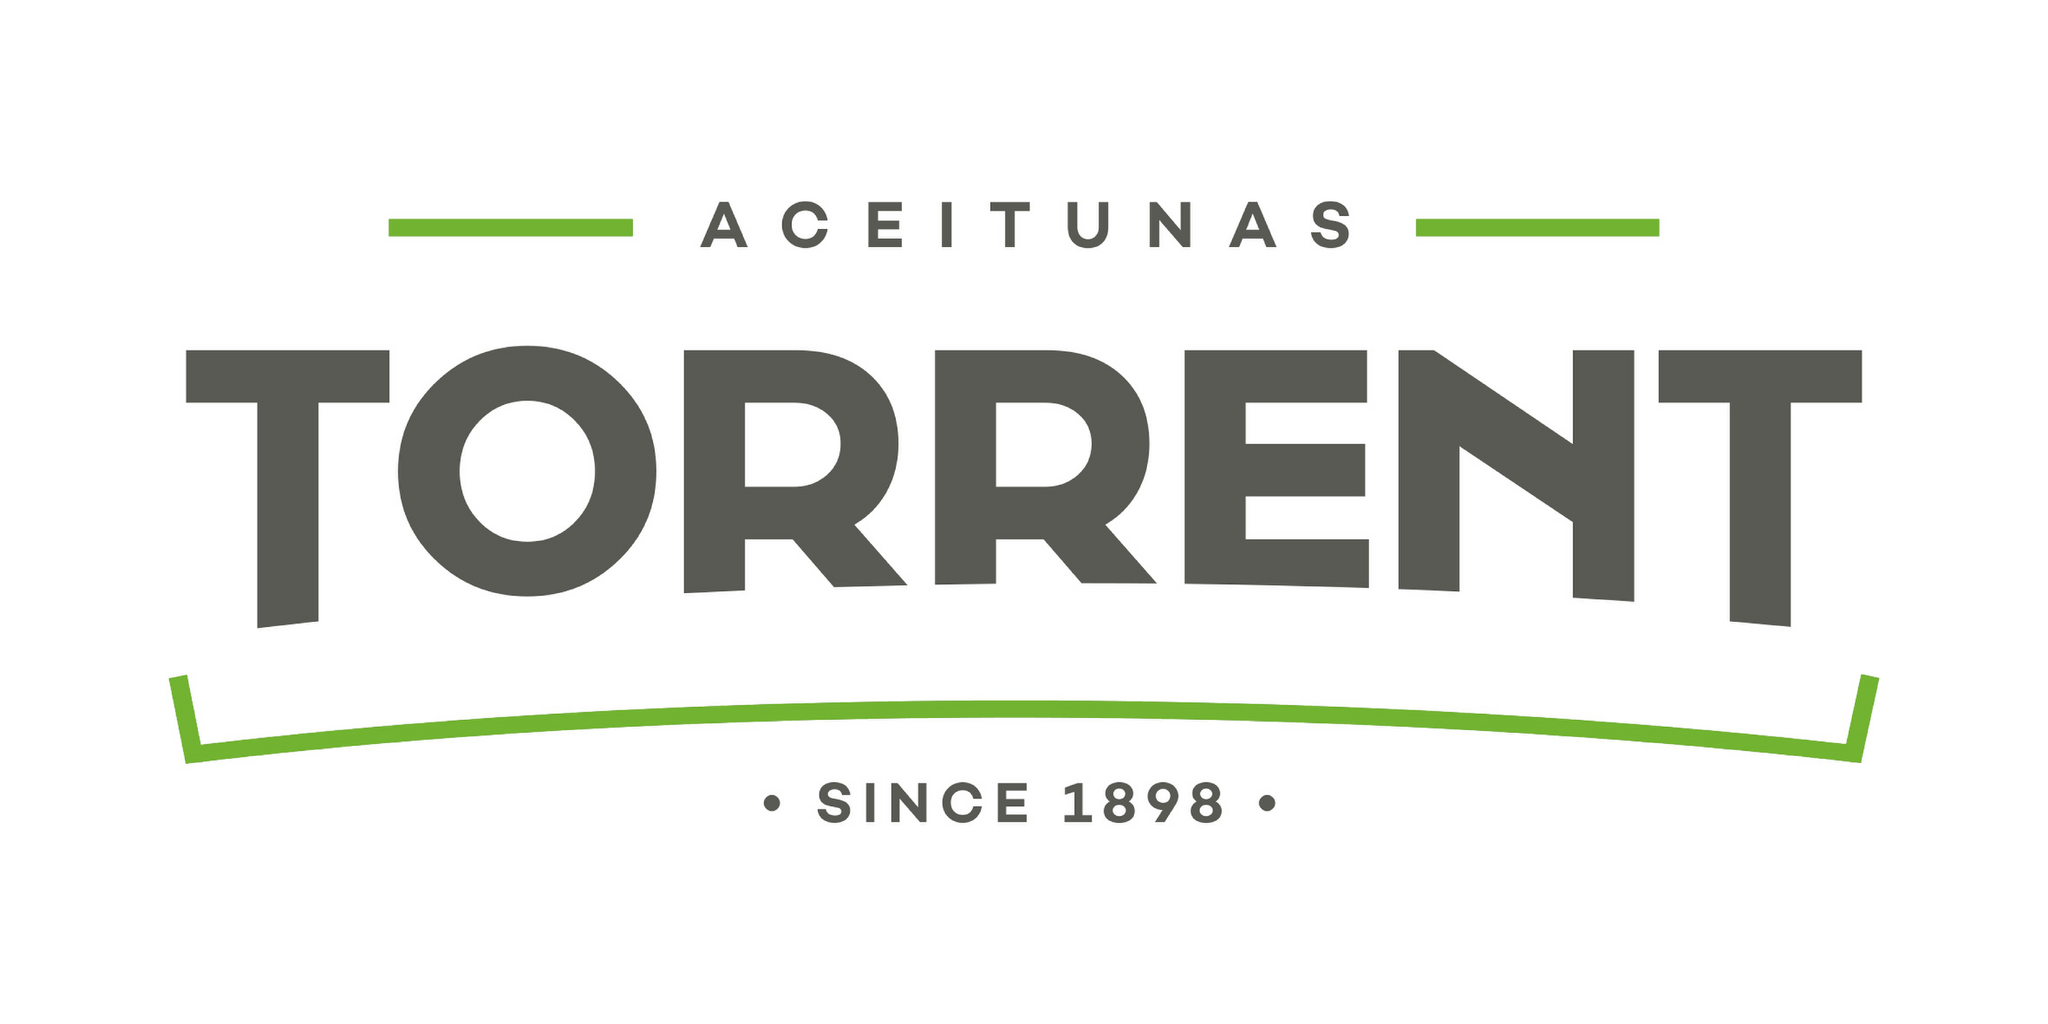 Aceitunas Torrent